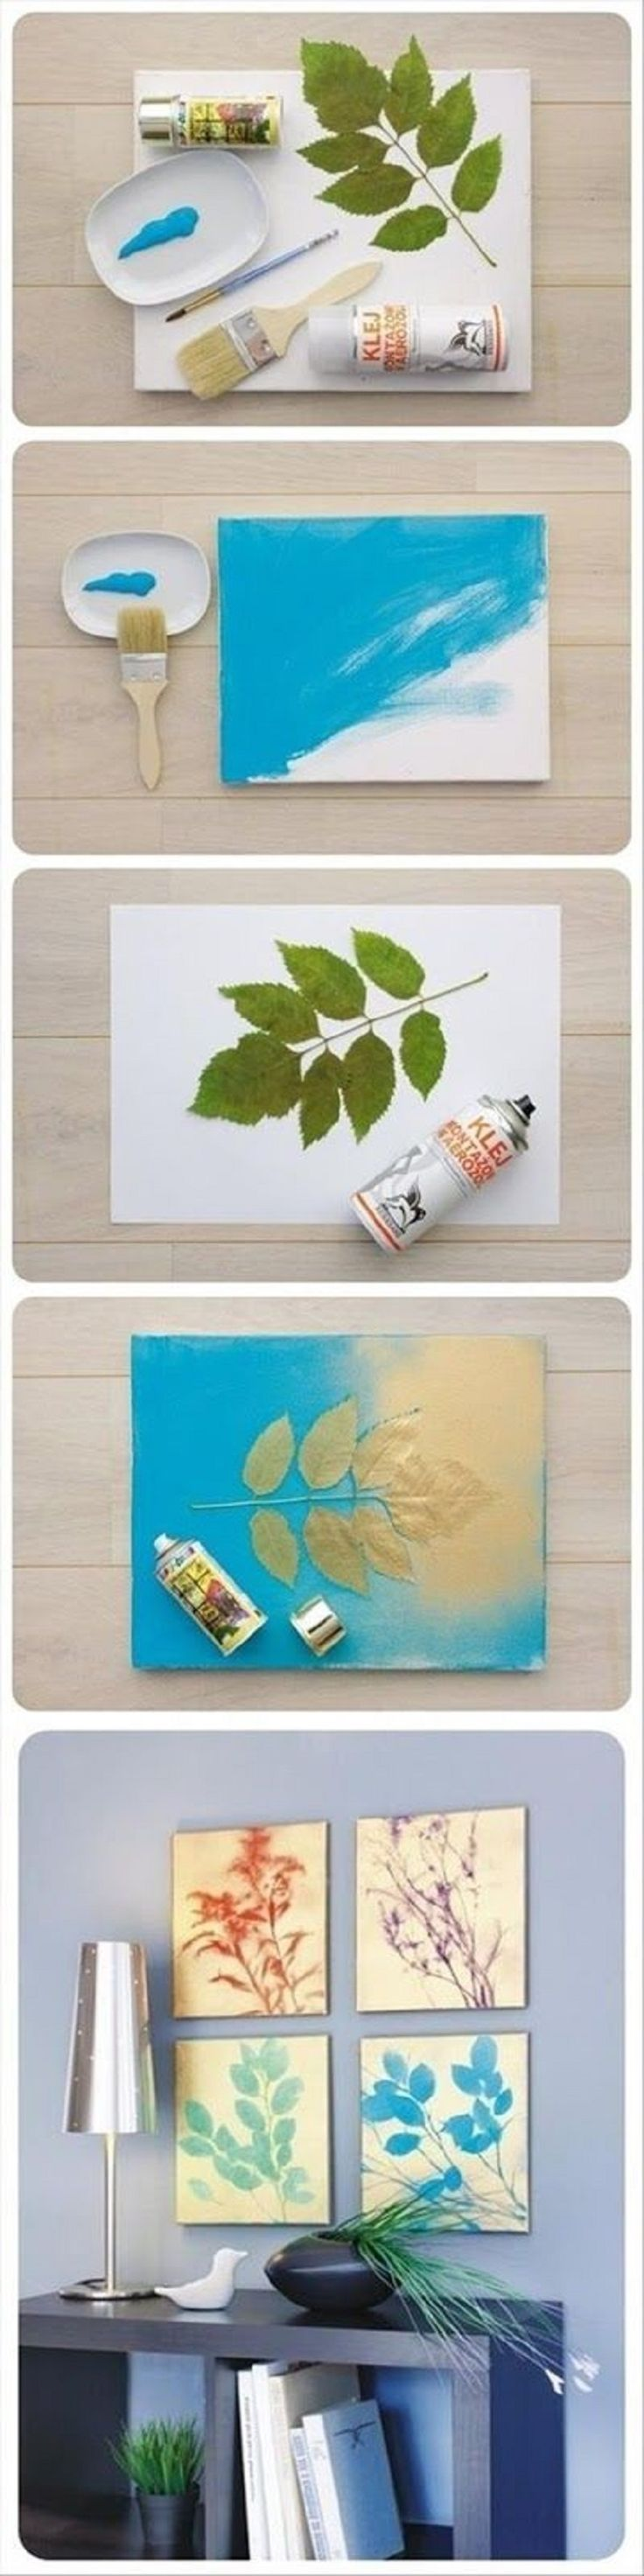 DIY Wall Art With Natural Motifs